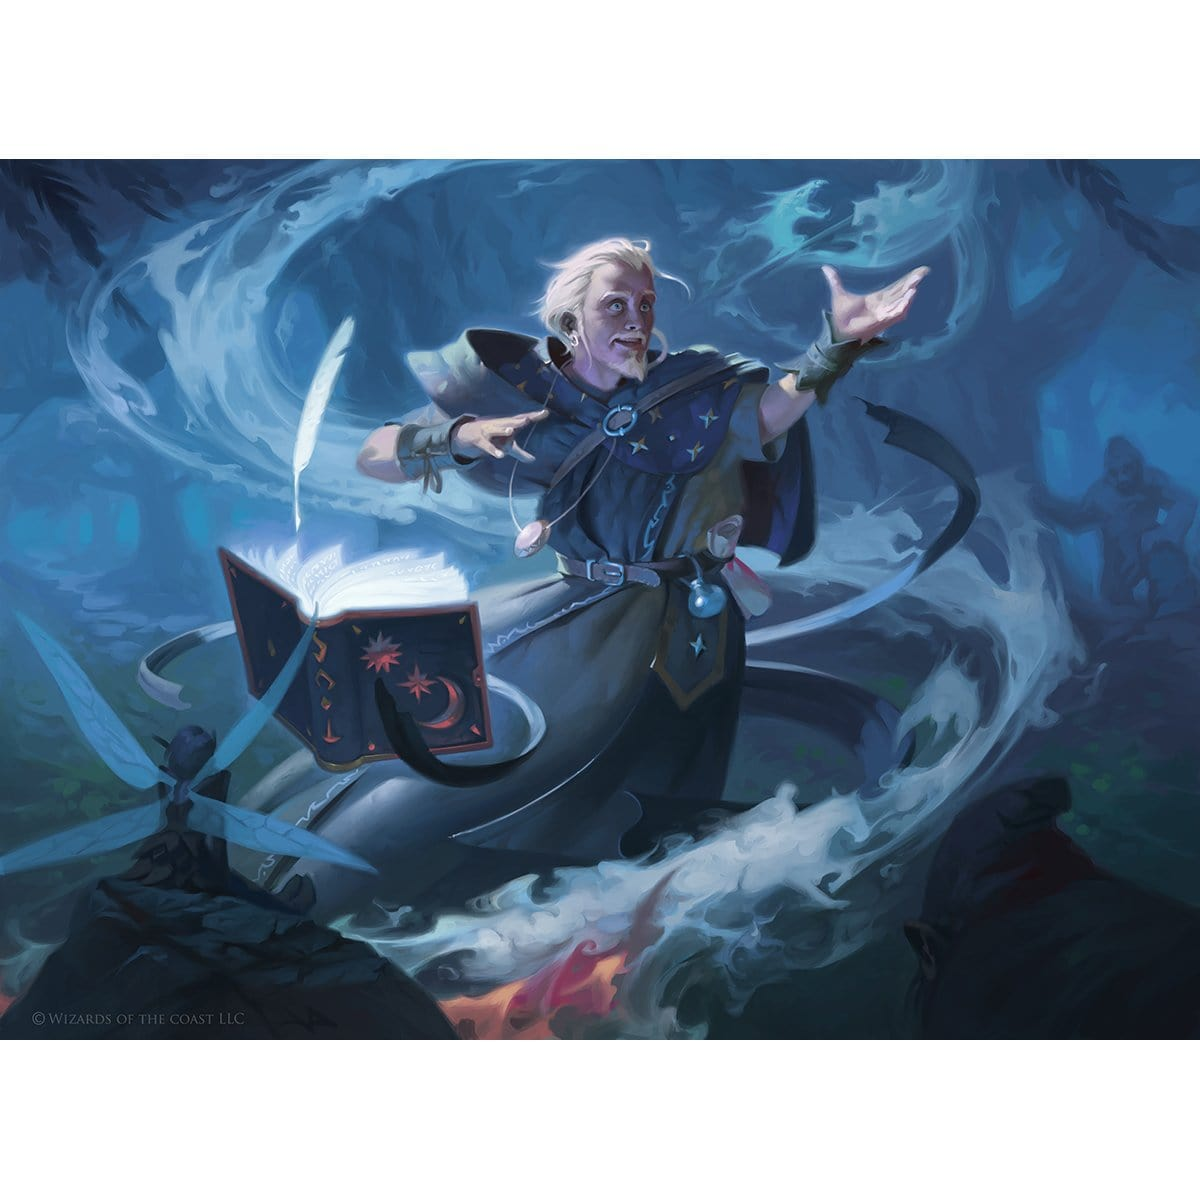 Chulane, Teller of Tales Print - Print - Original Magic Art - Accessories for Magic the Gathering and other card games